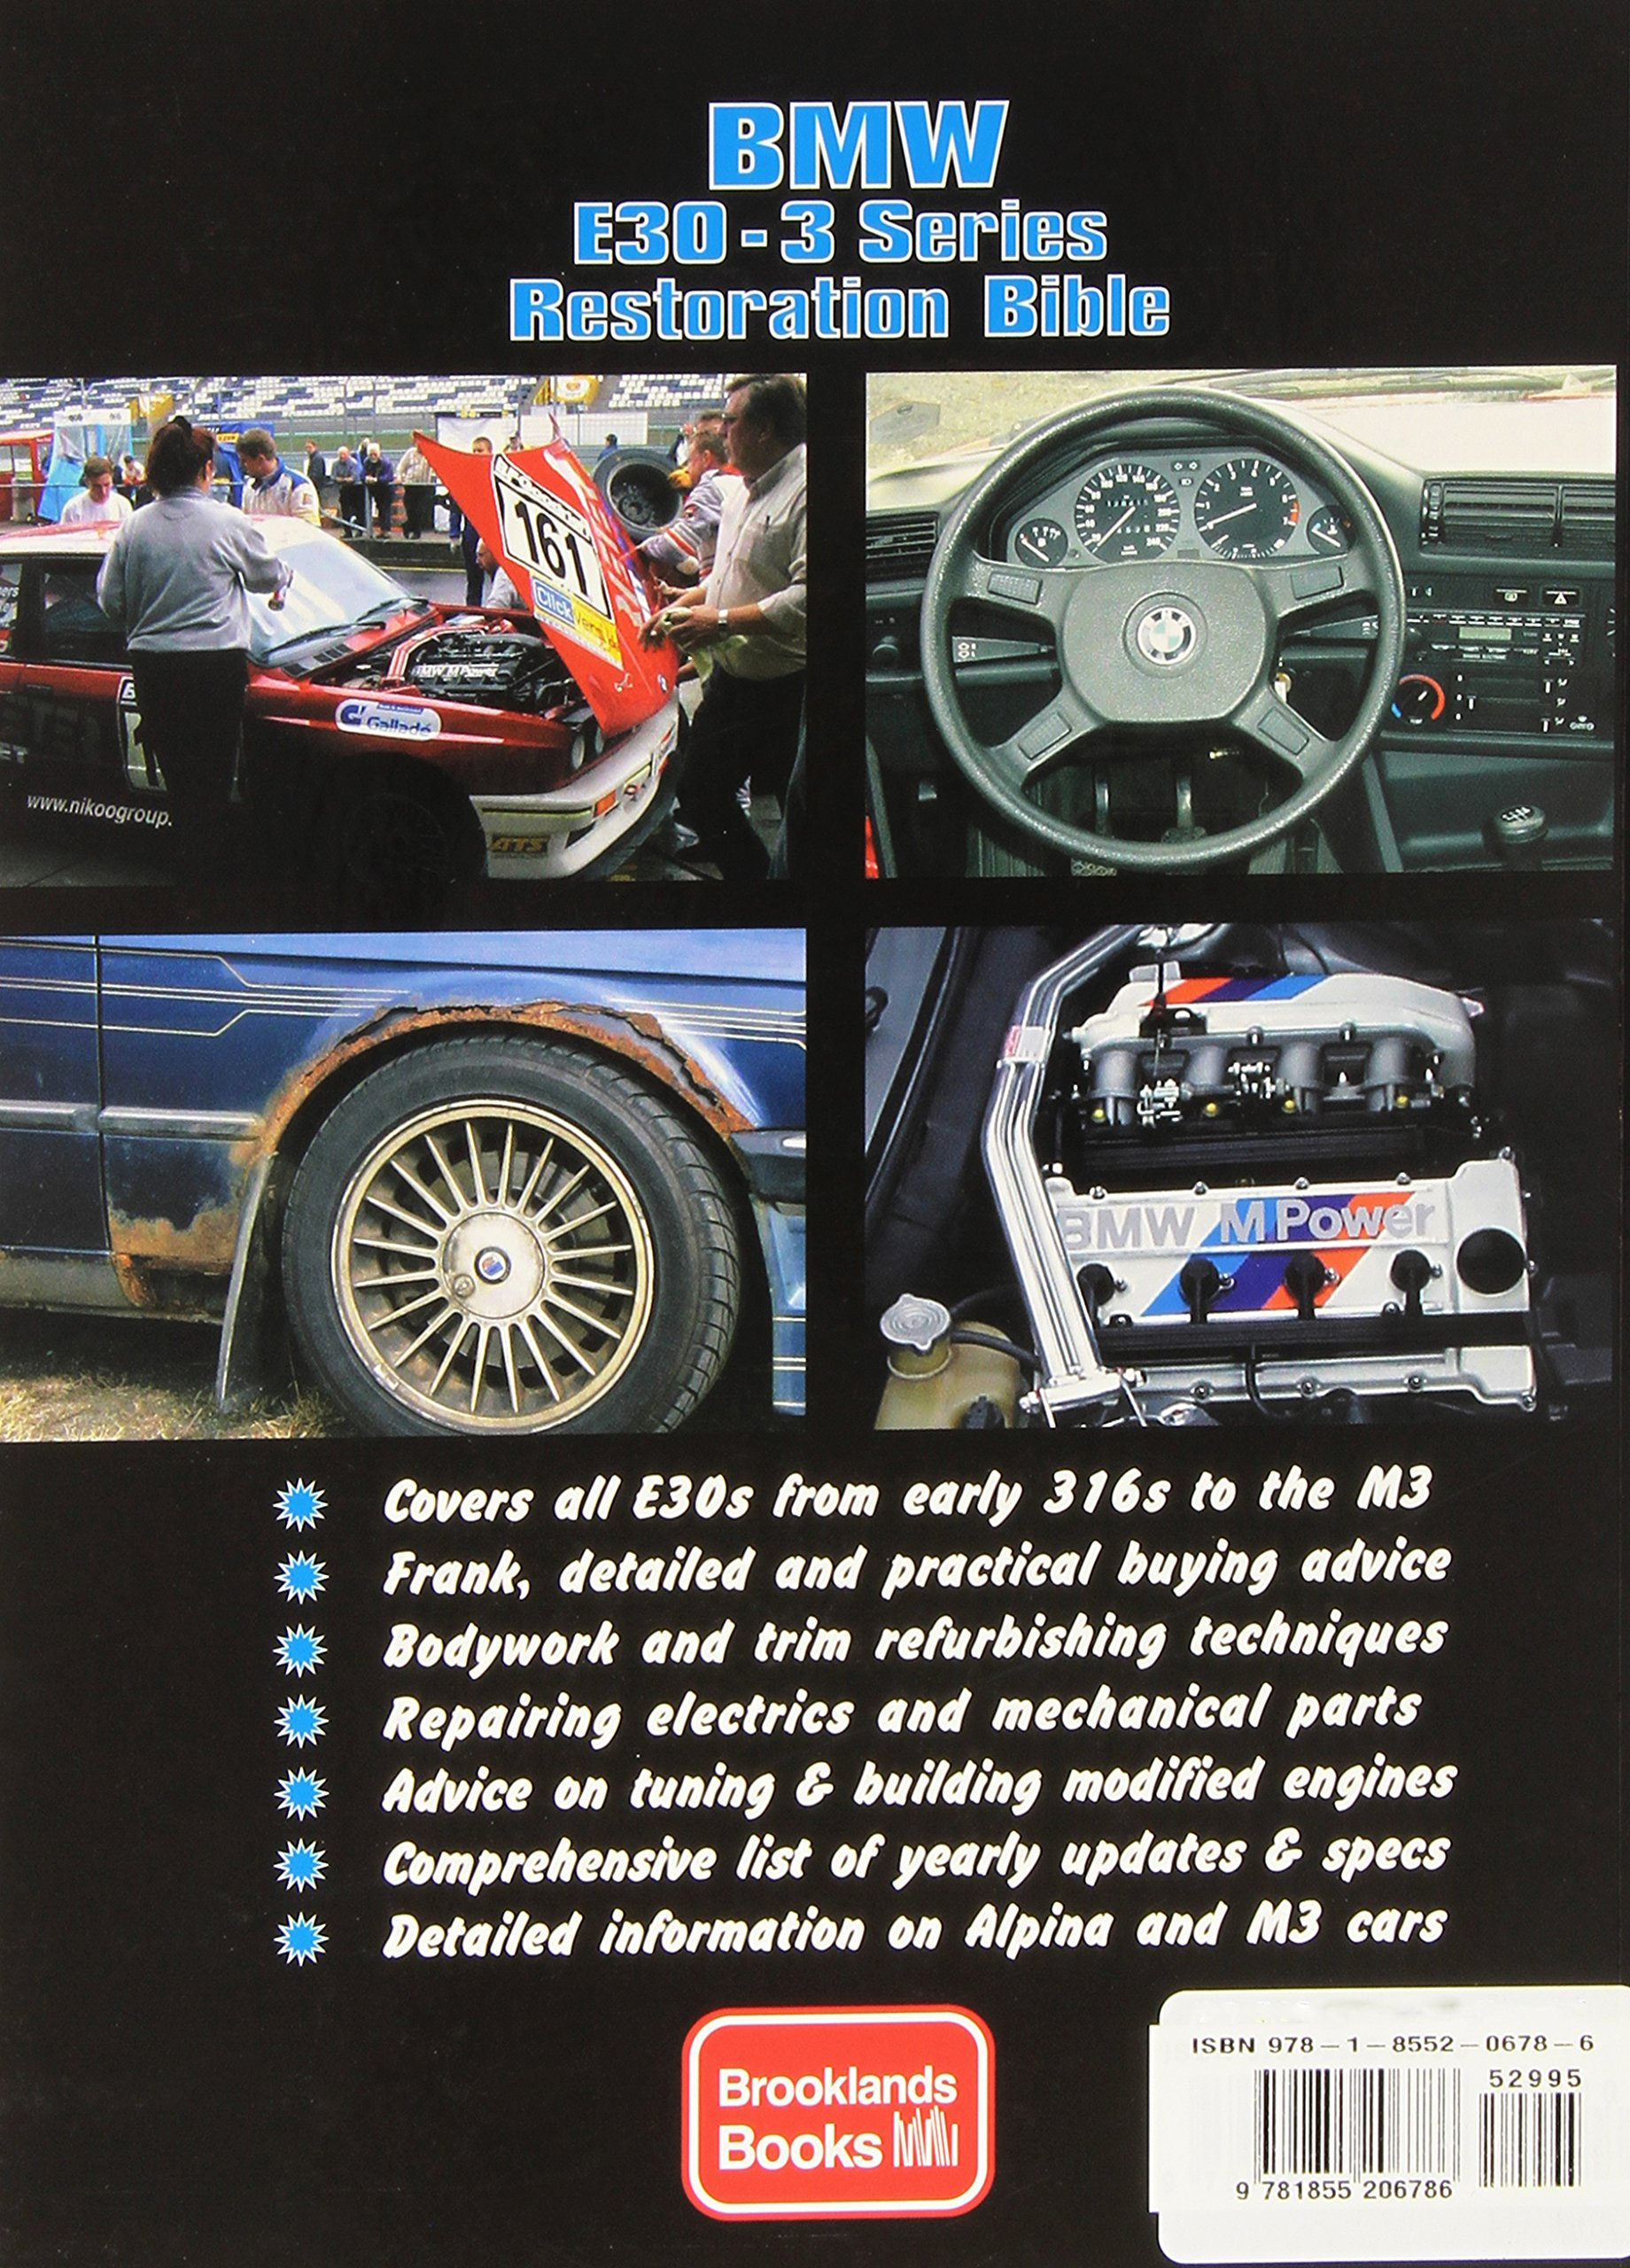 BMW E30-3 Series Restoration Bible (Brooklands Books): Andrew Everett:  9781855206786: Amazon.com: Books